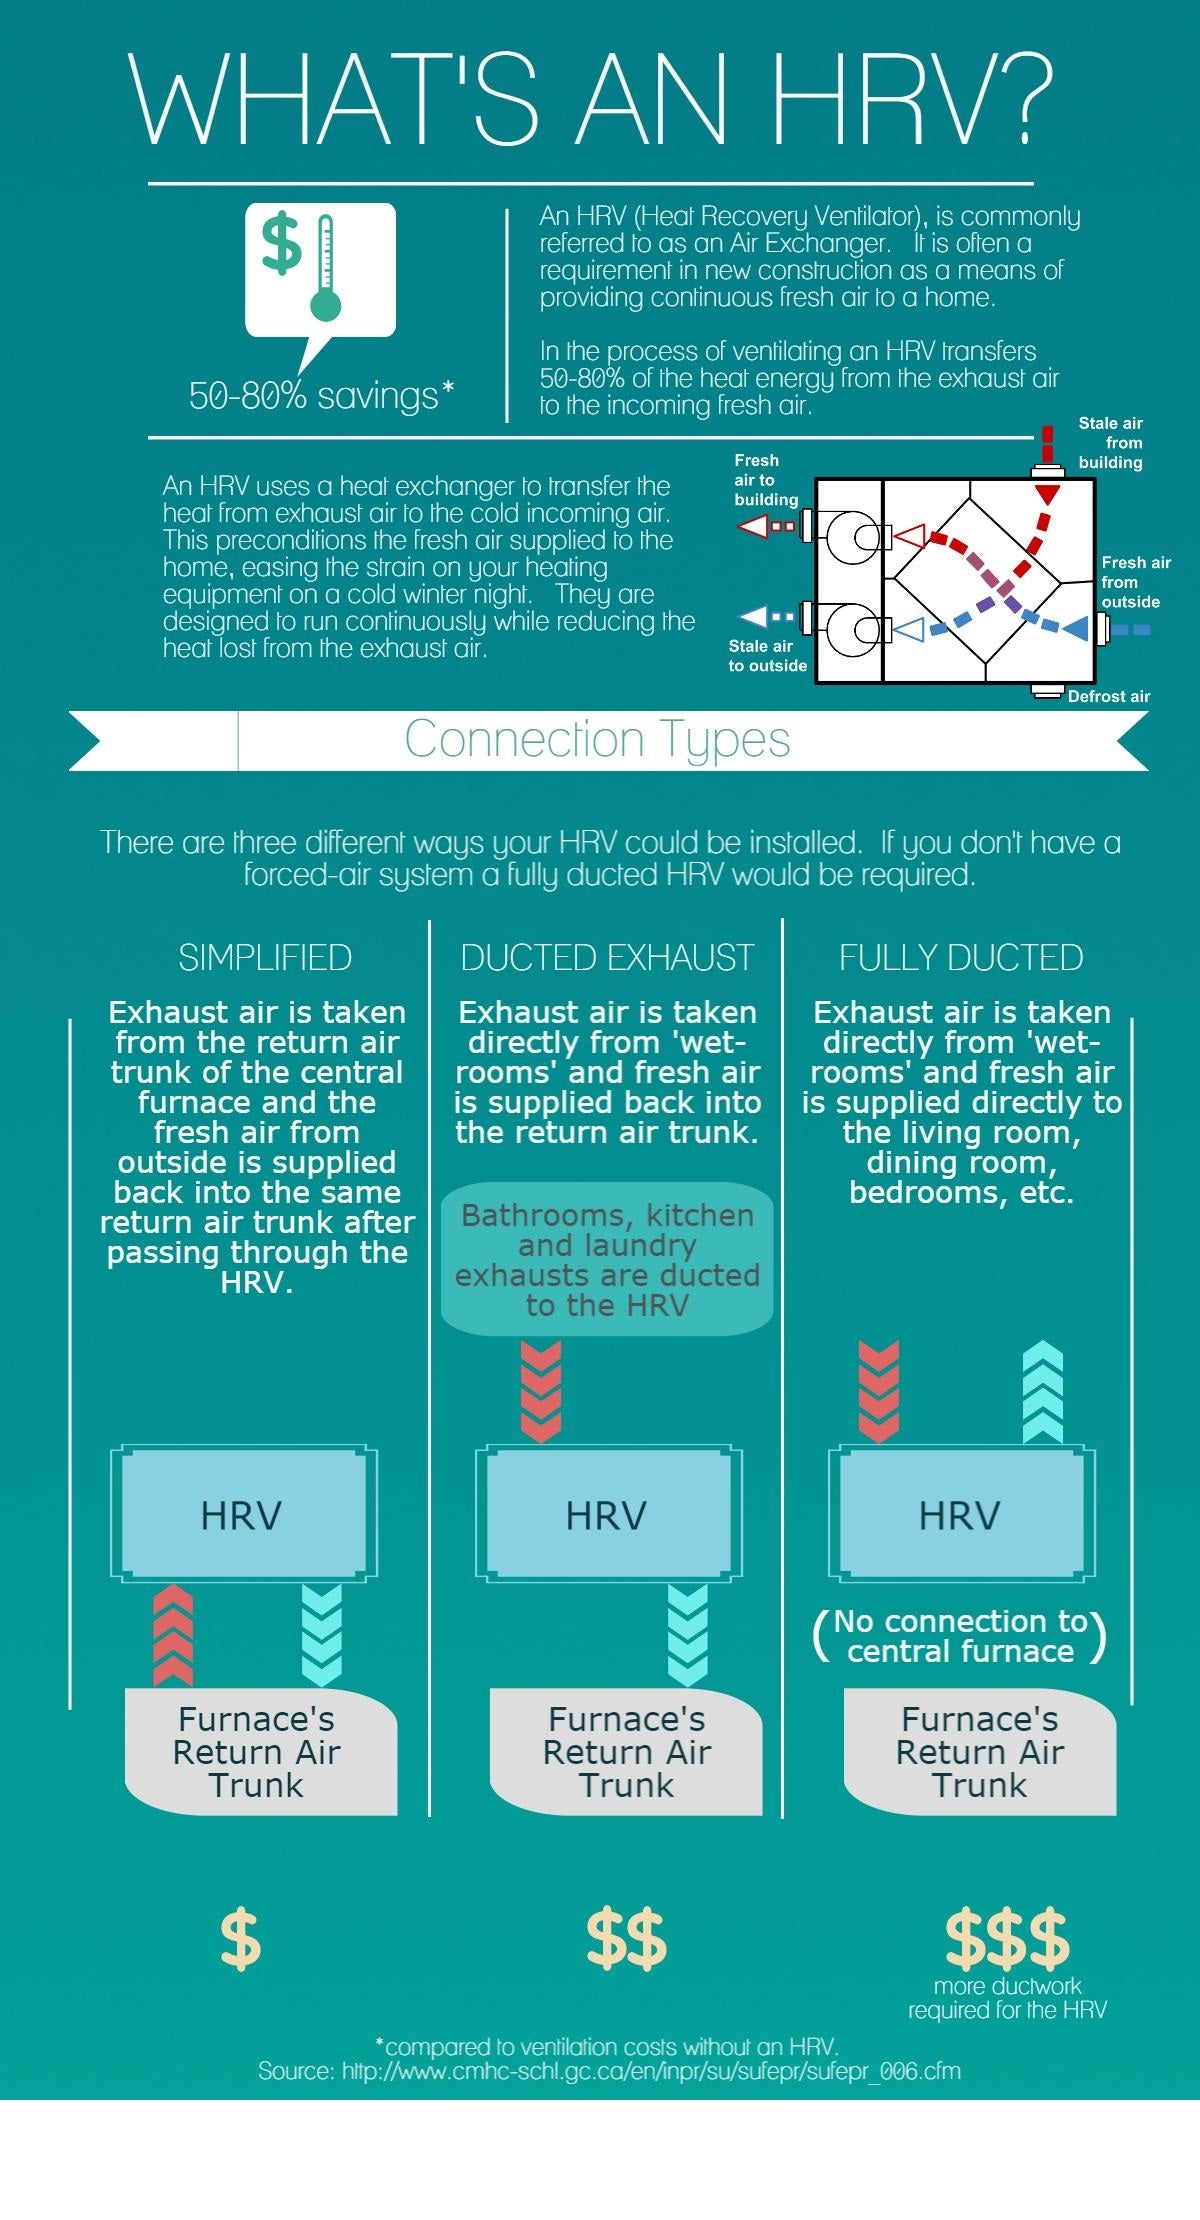 What is an HRV?